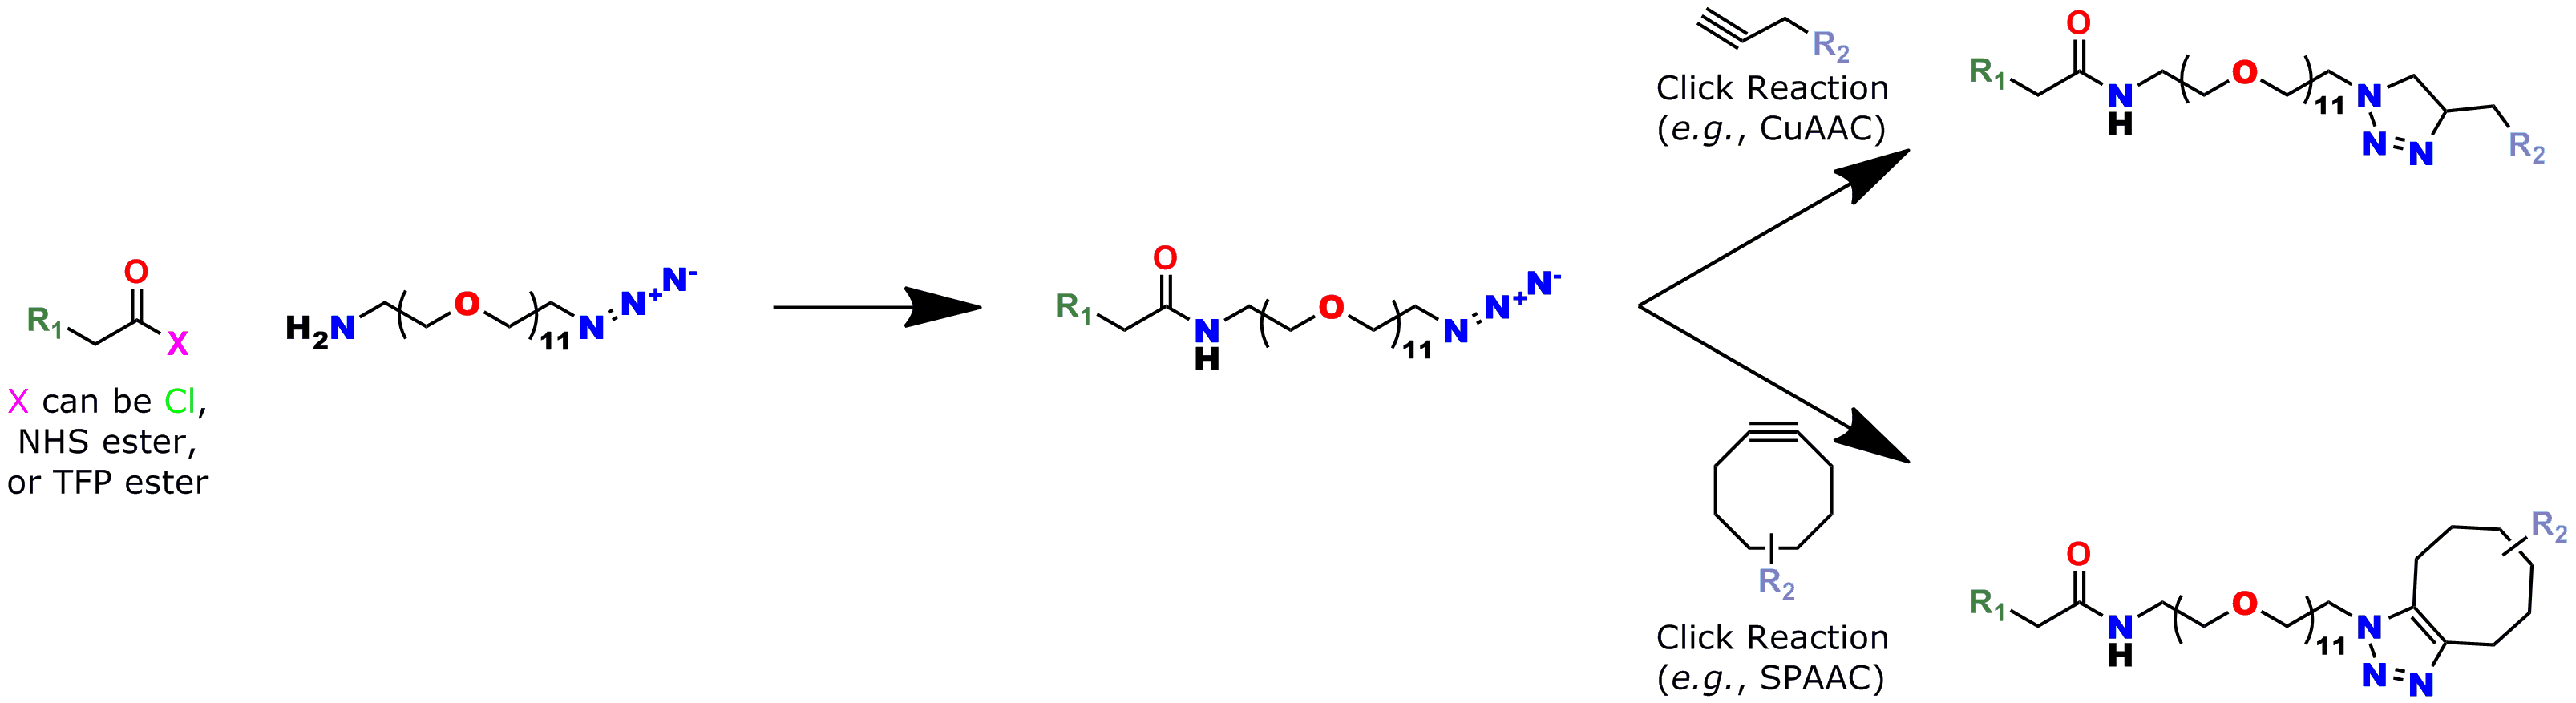 This reaction scheme shows how to use Quanta BioDesign's product number 10524, Azido-dPEG®11-amine, as a click chemistry crosslinking reagent. In the scheme, the amine end of molecule is reacted with a carboxylate group forming an amide bond with R1. Subsequently, the azide end of the molecule reacts by click chemistry (either copper(I)-catalyzed or strain-promoted azide-alkyne cycloaddition) to crosslink R1 with R2.